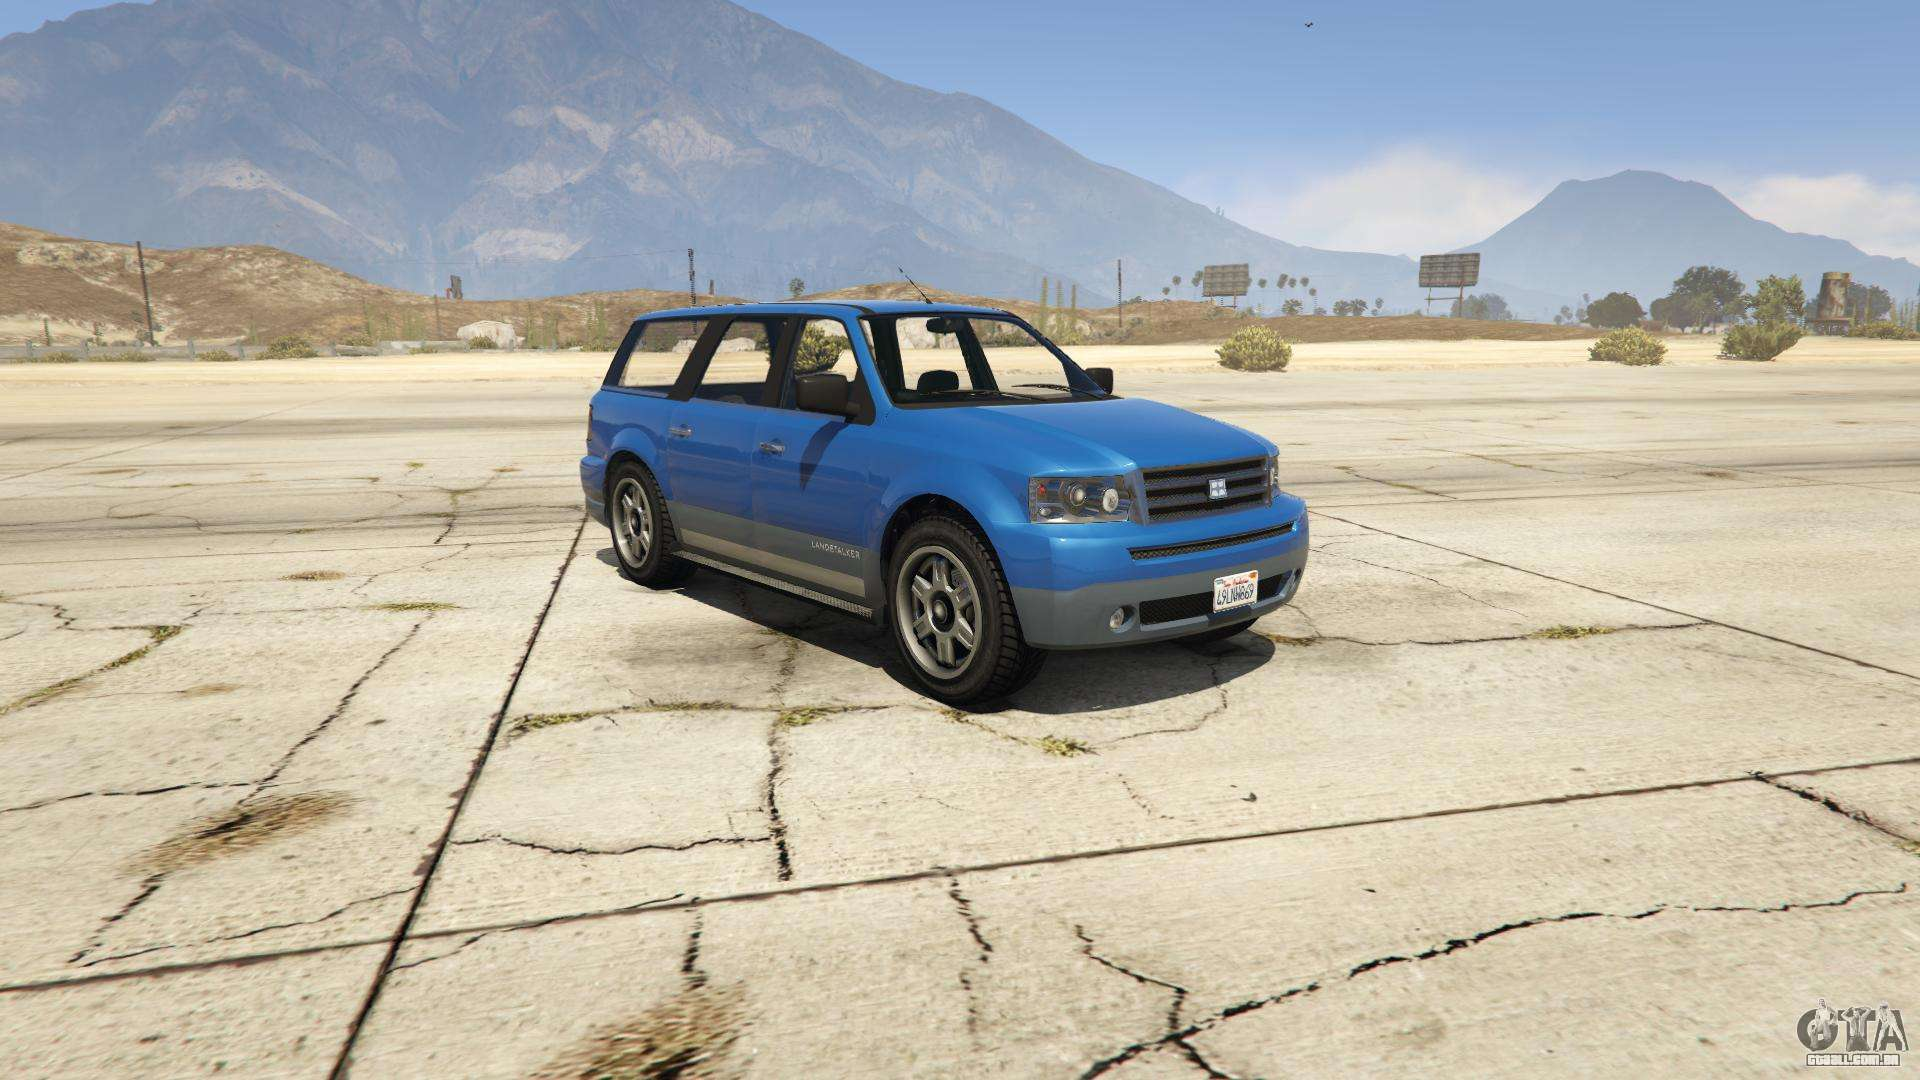 GTA 5 Dundreary Landstalker - vista frontal